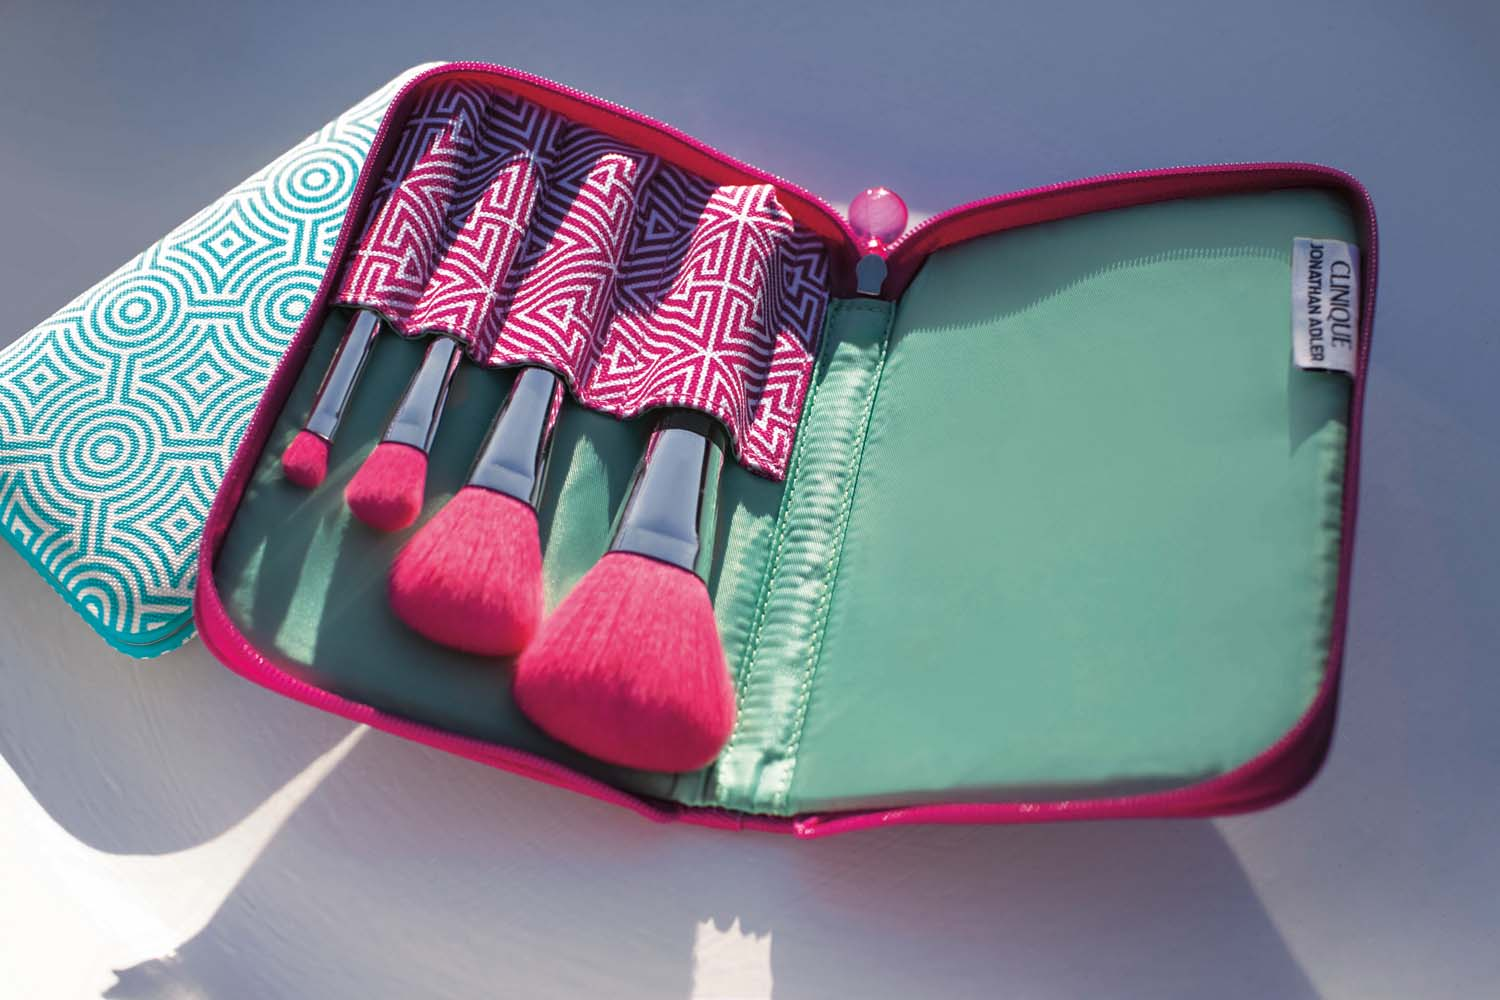 Clinique + Jonathan Adler Luxe Brush Collection